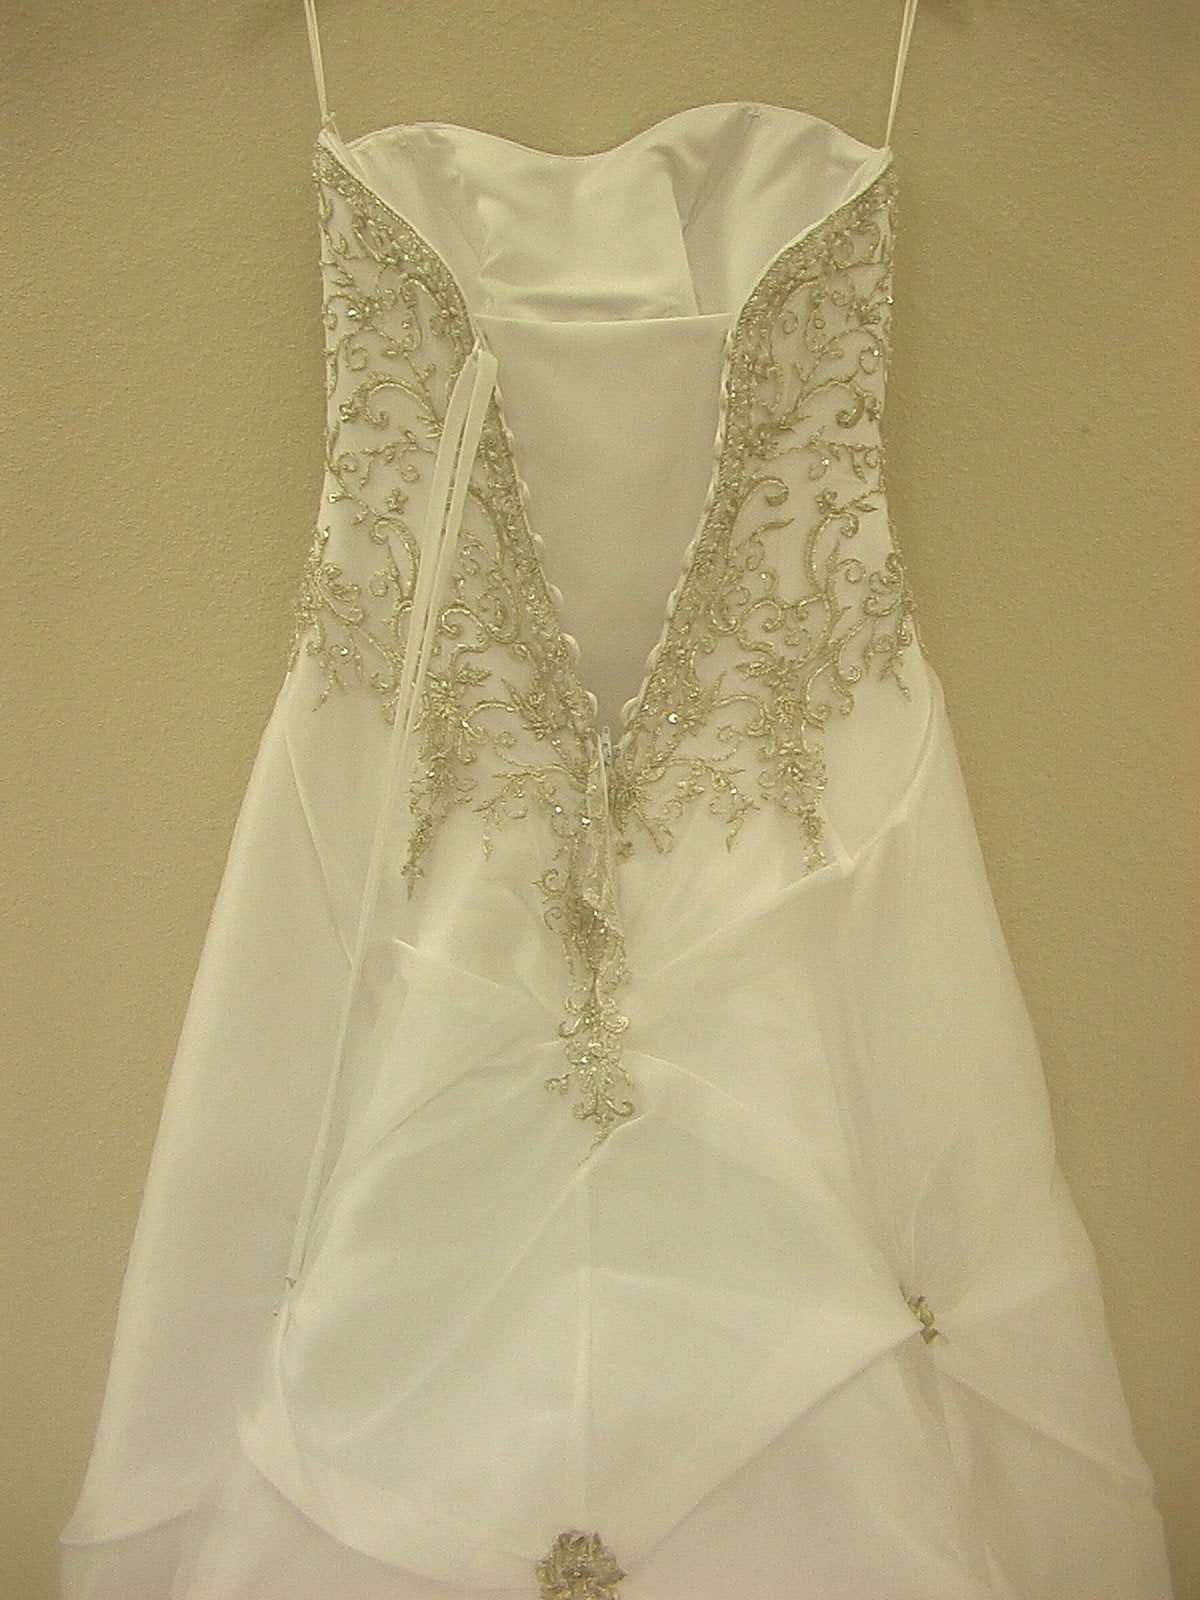 Mori Lee Blu 4133 White/Silver size 10 In Stock Wedding Dress - Tom's Bridal